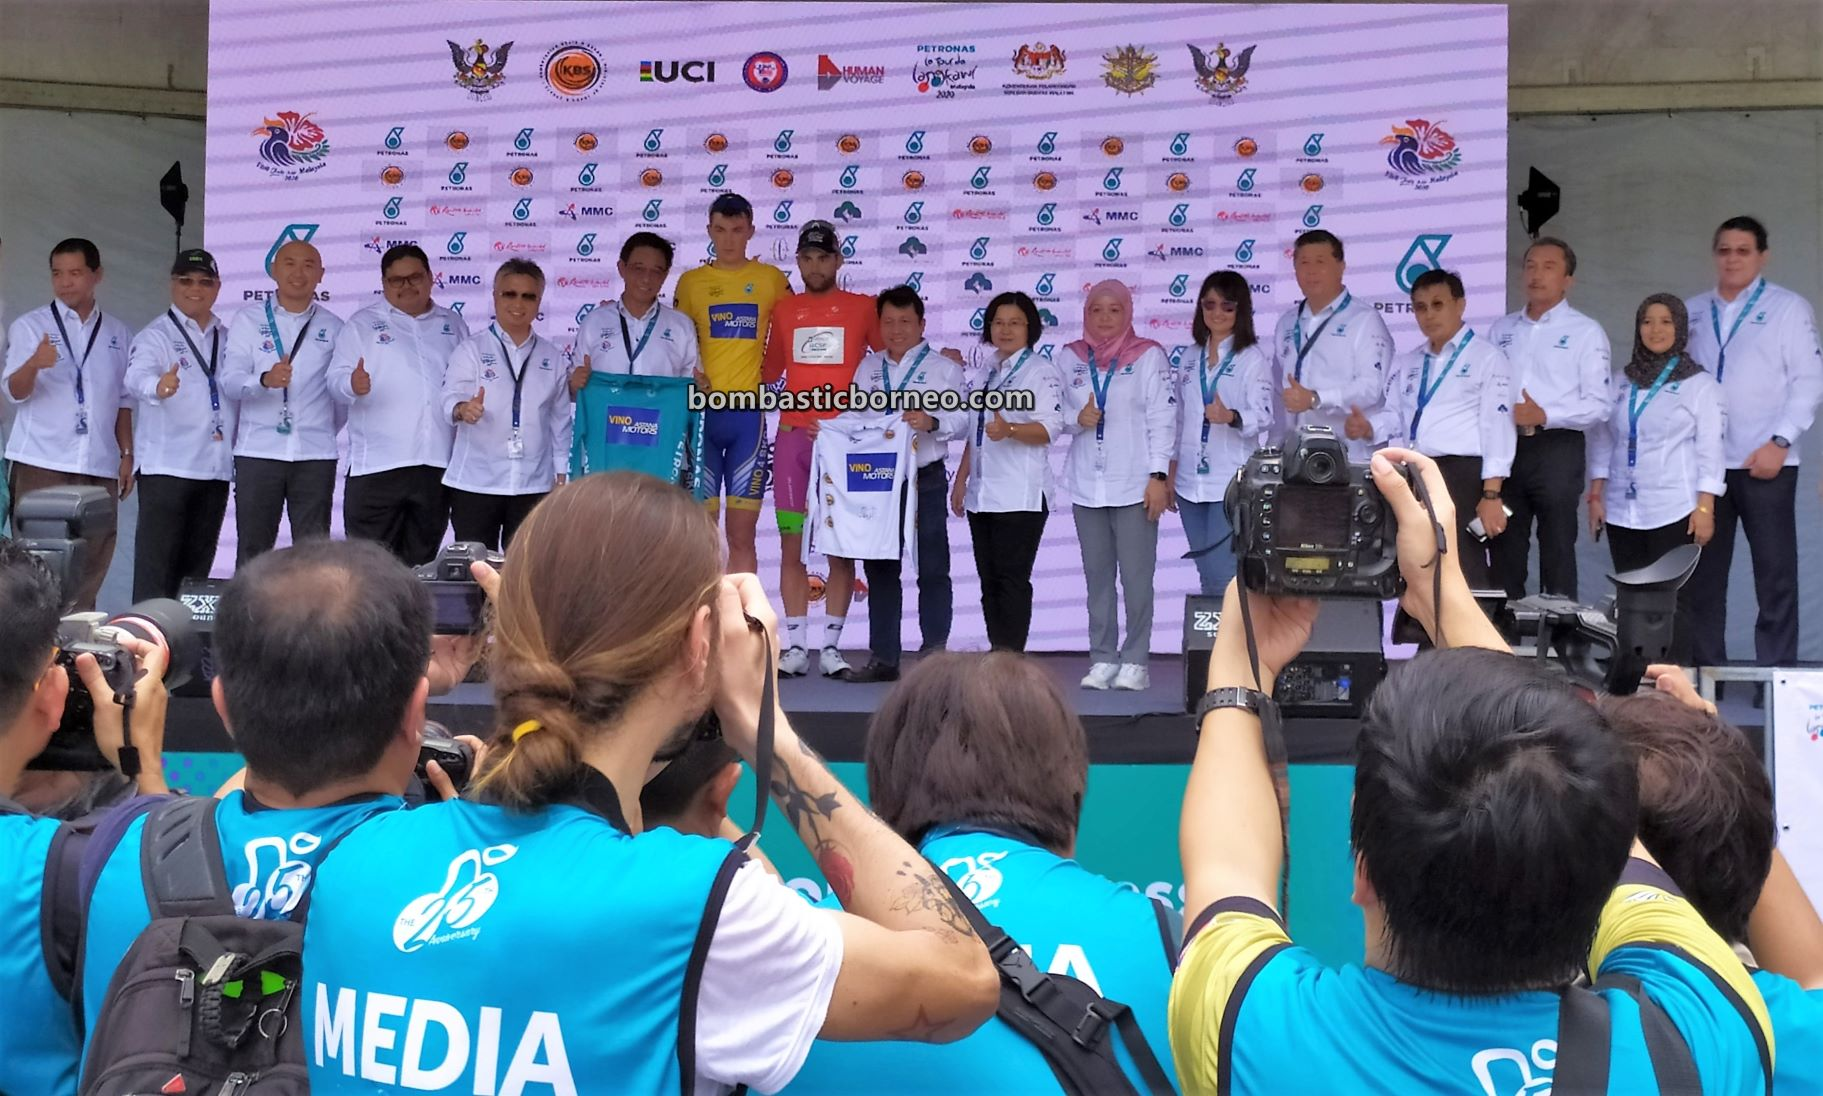 Petronas, Cyclist, bicycle, race, championship, competition, Sports, event, Malaysia, Tourism, tourist attraction, travel guide, 古晋砂拉越马来西亚, 骑自行车比赛